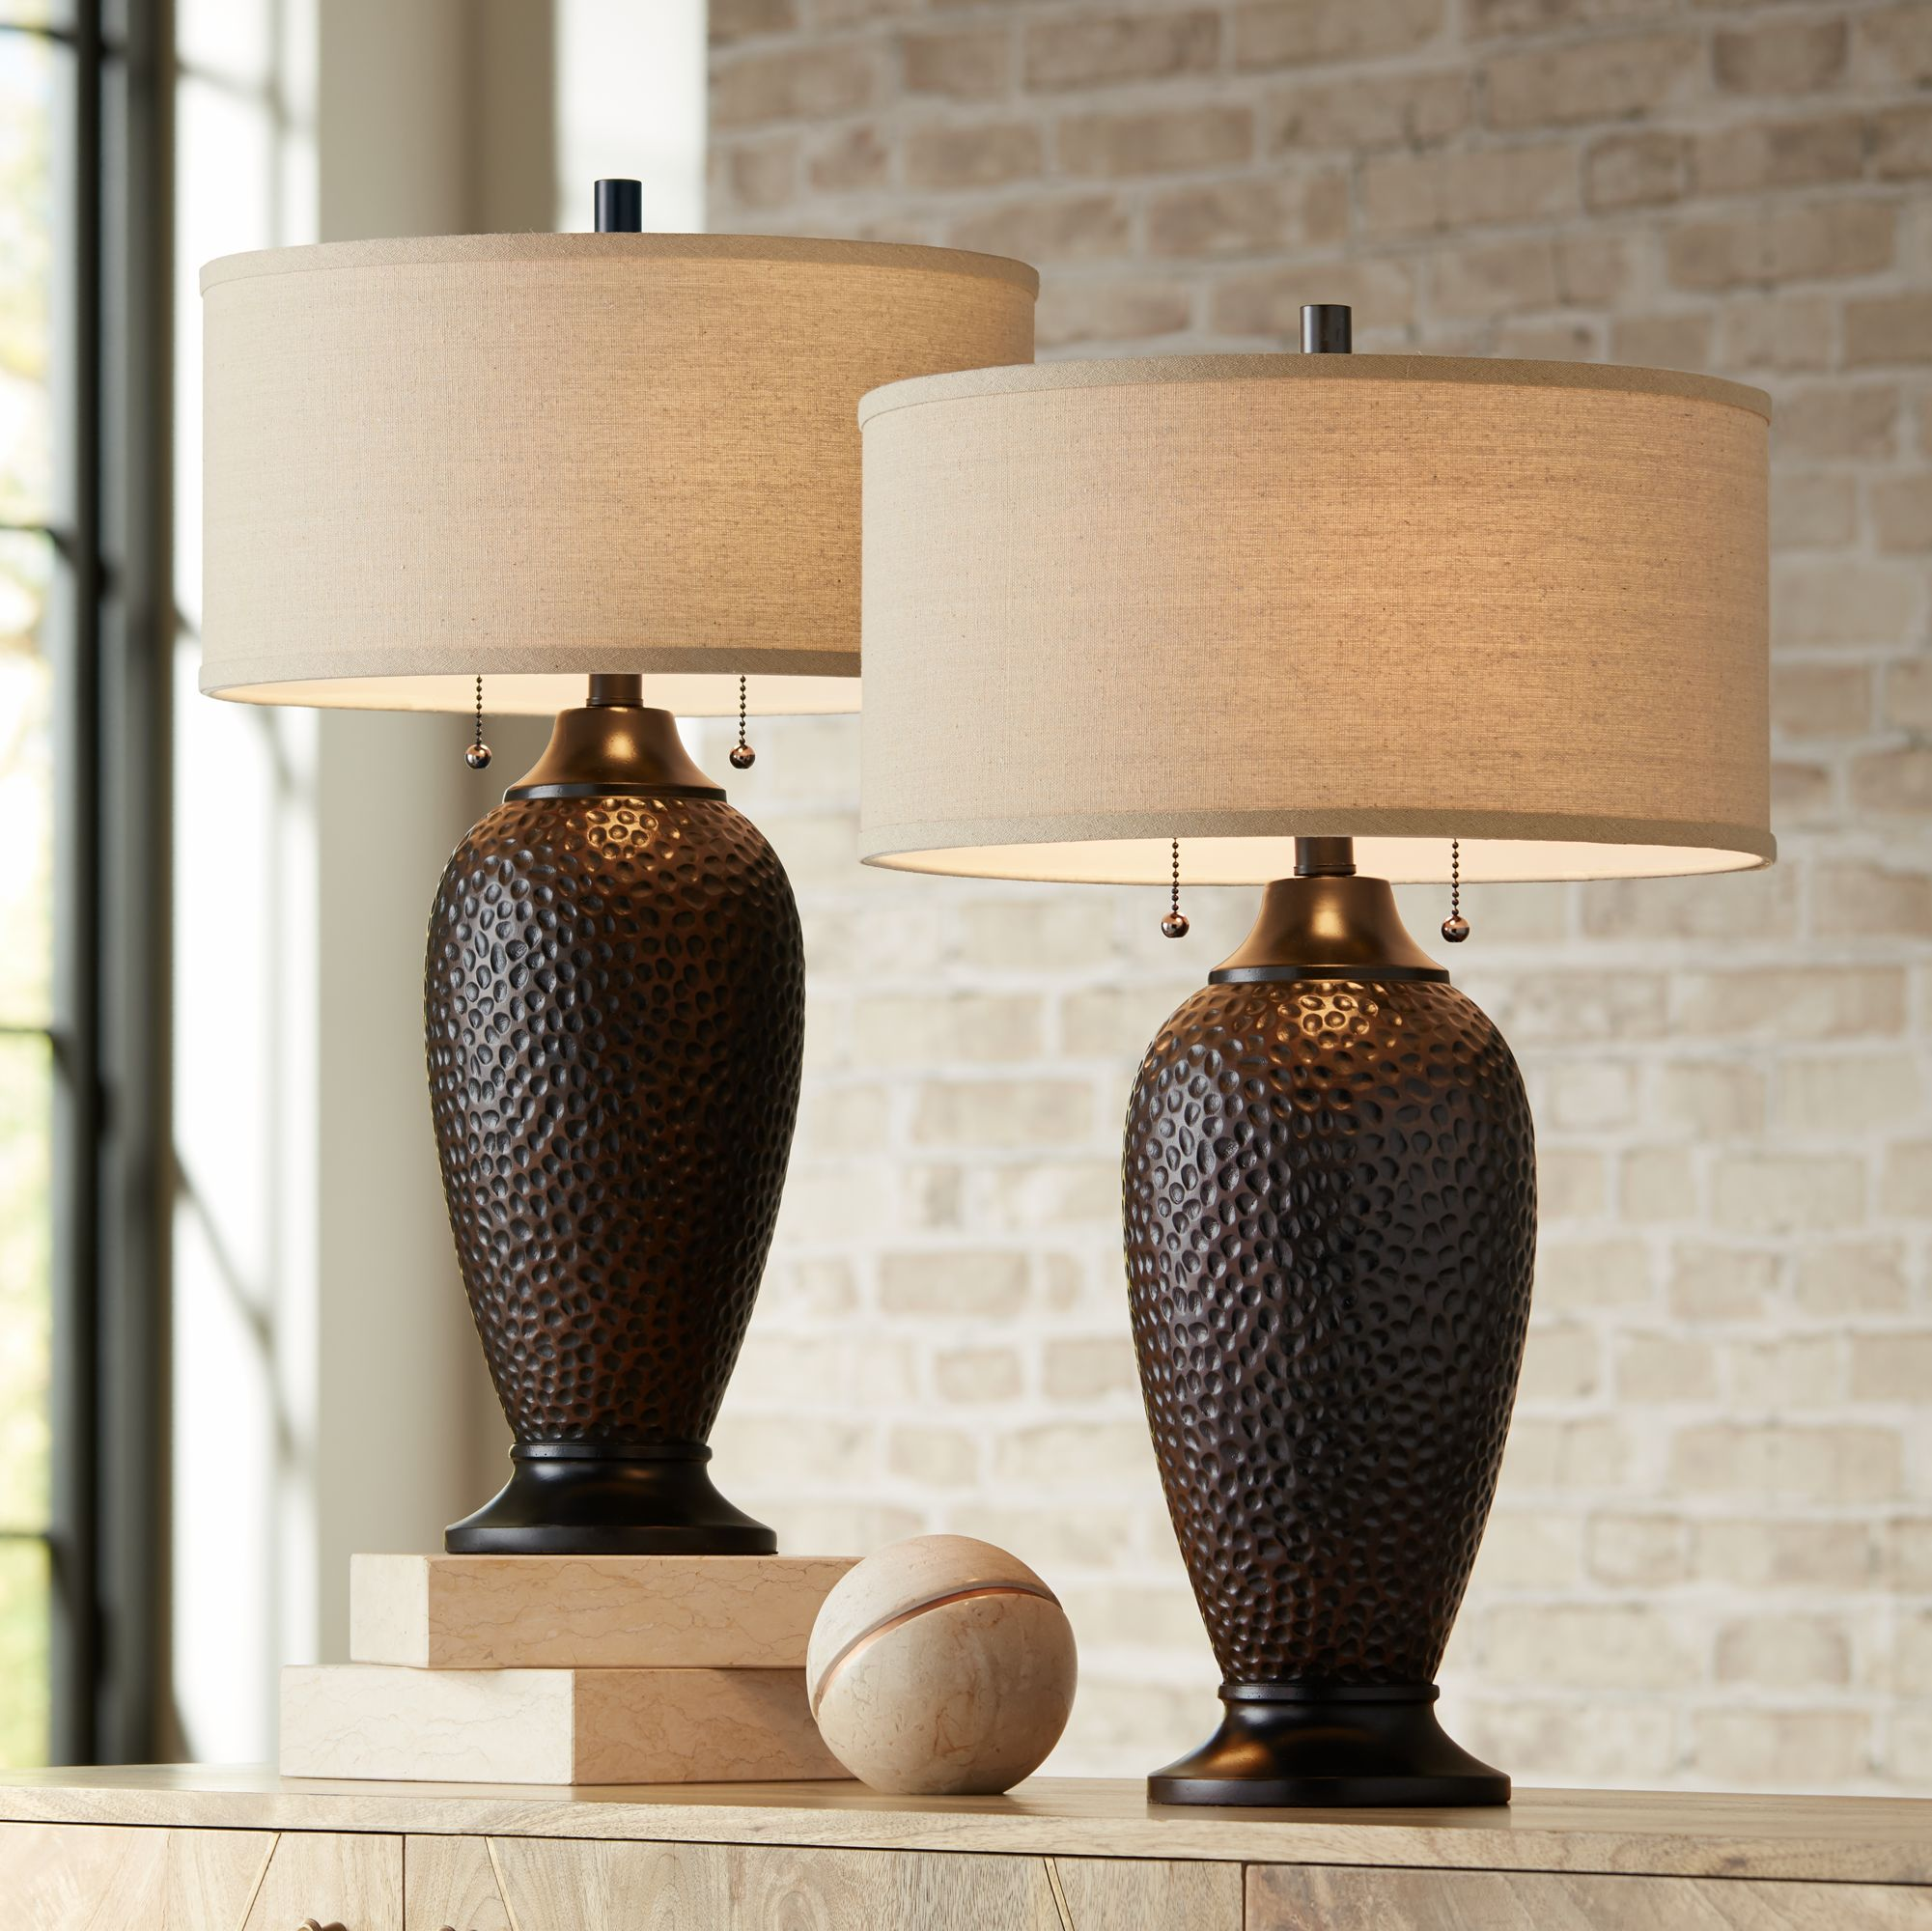 Delicieux Details About Modern Table Lamps Set Of 2 Hammered Oiled Bronze For Living  Room Family Bedroom